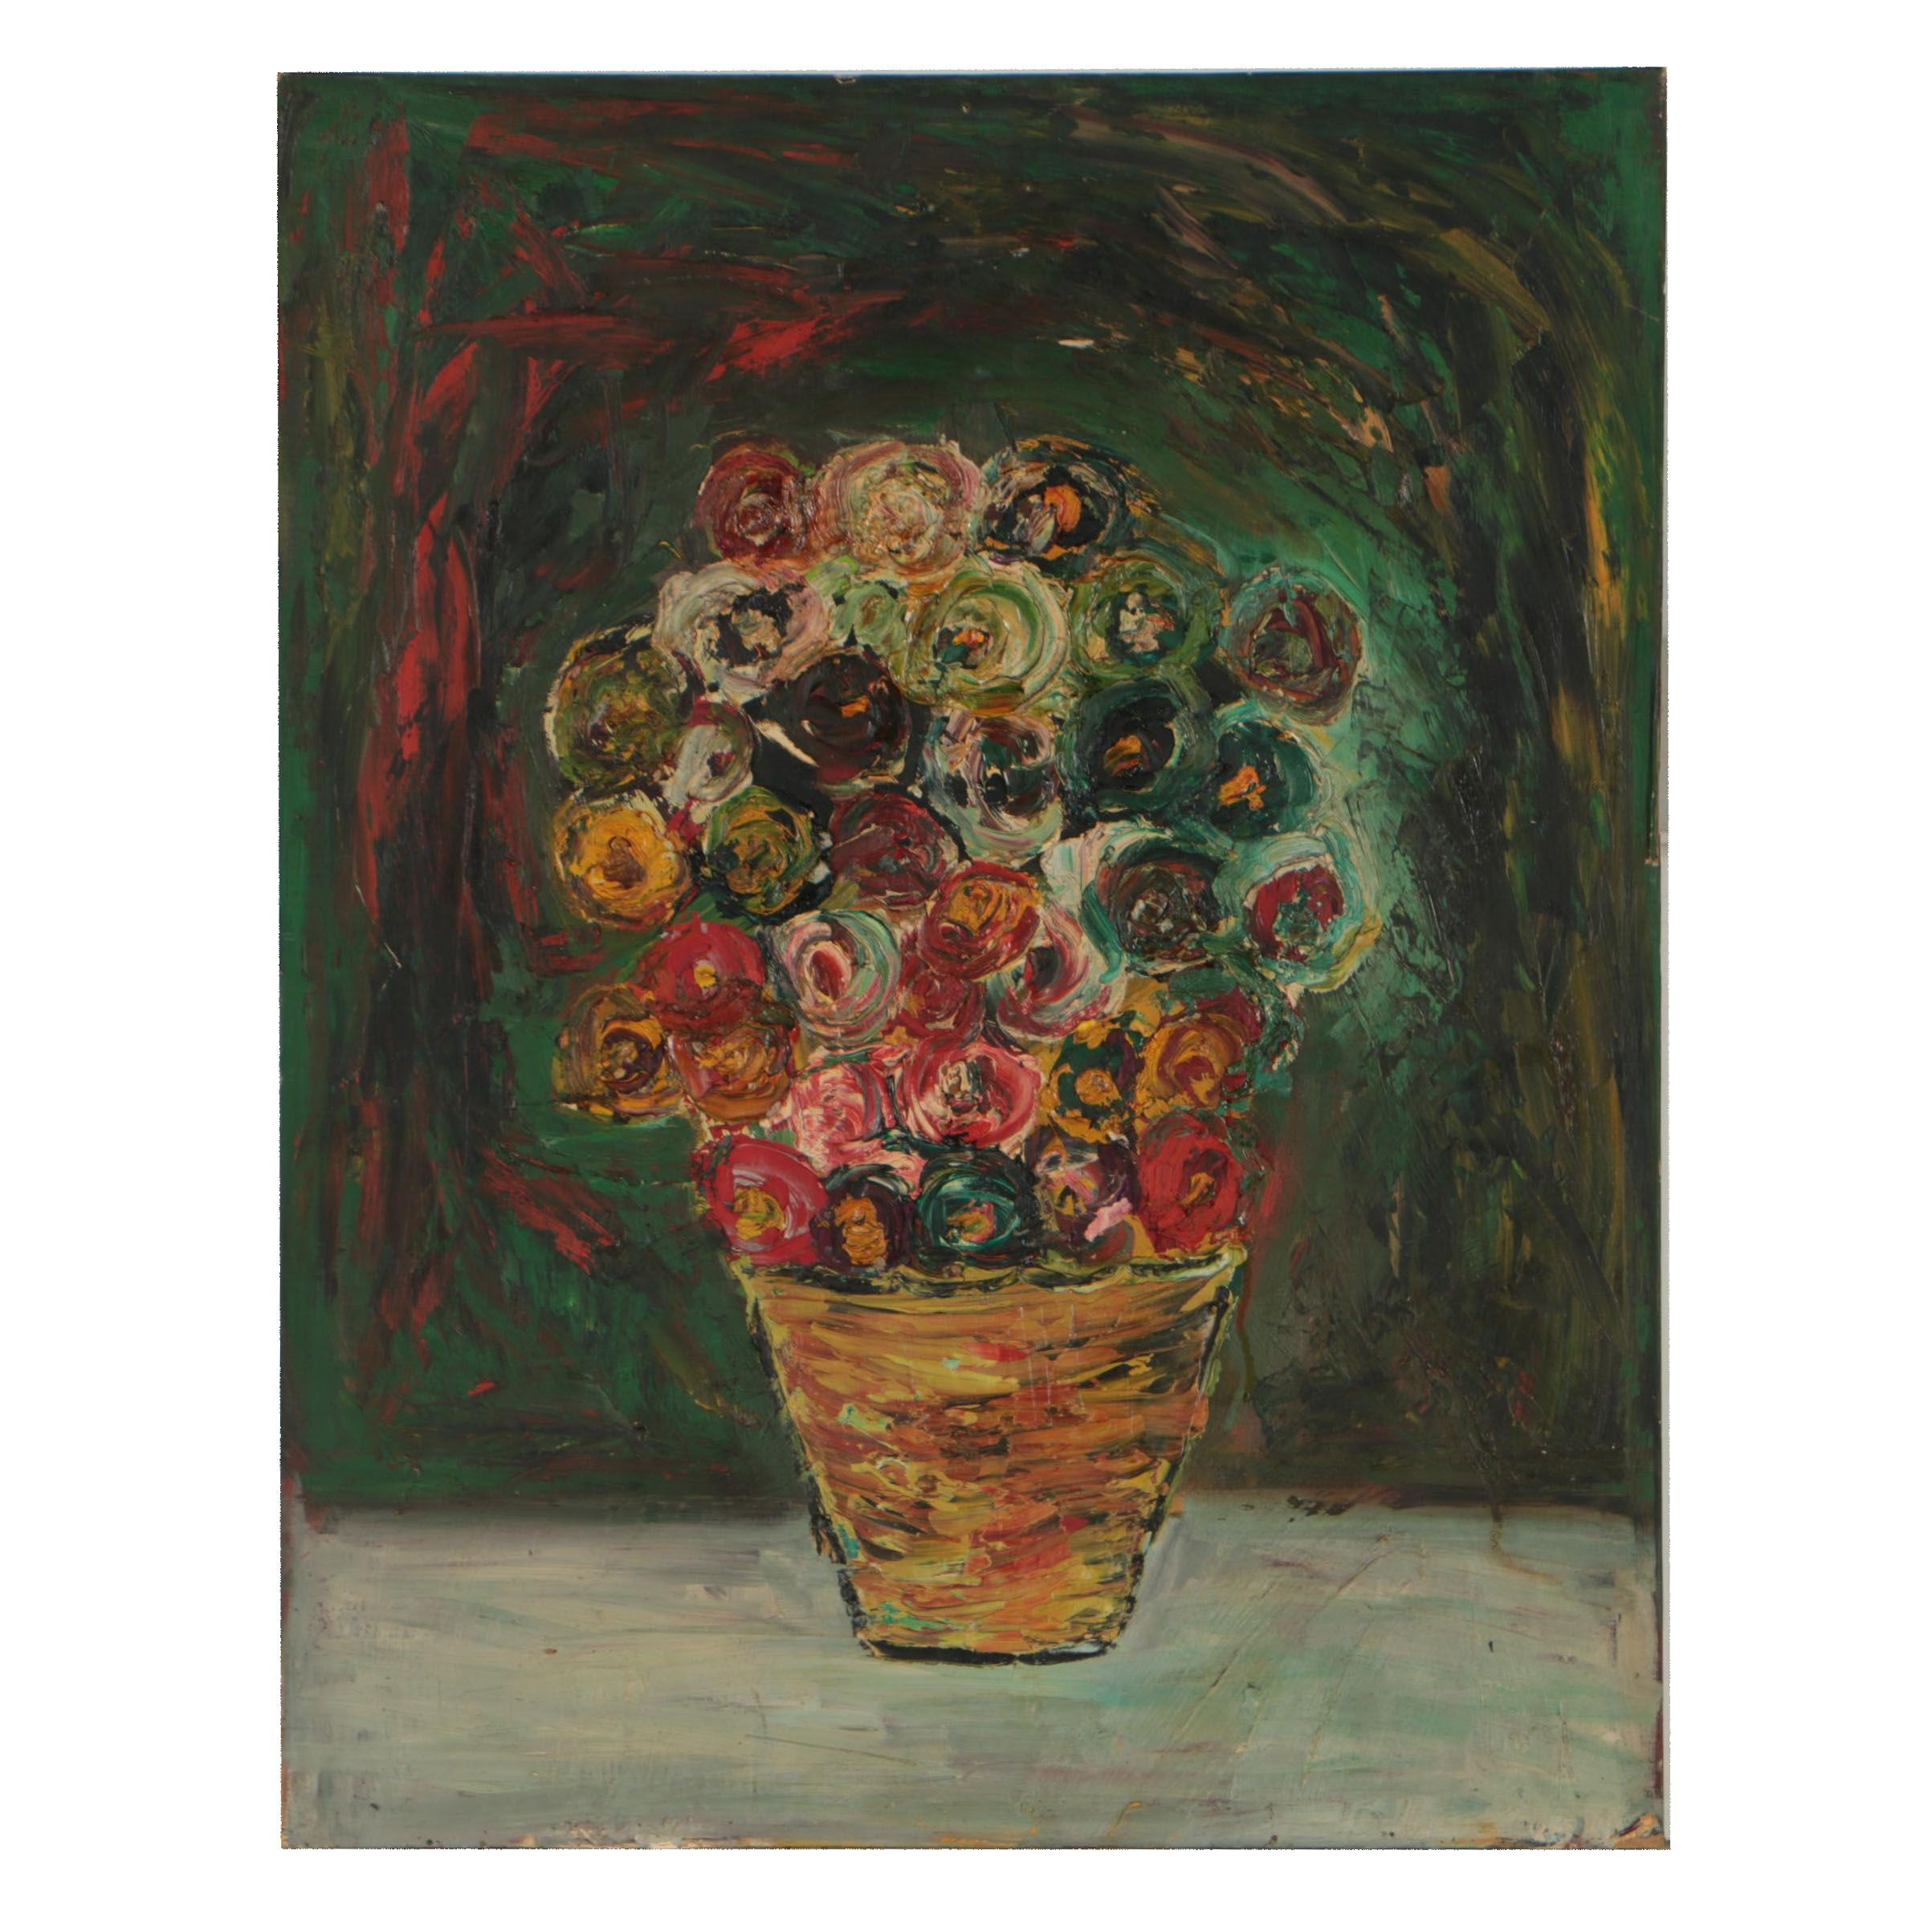 Charles Tullio Abstract Oil Painting of Floral Still Life